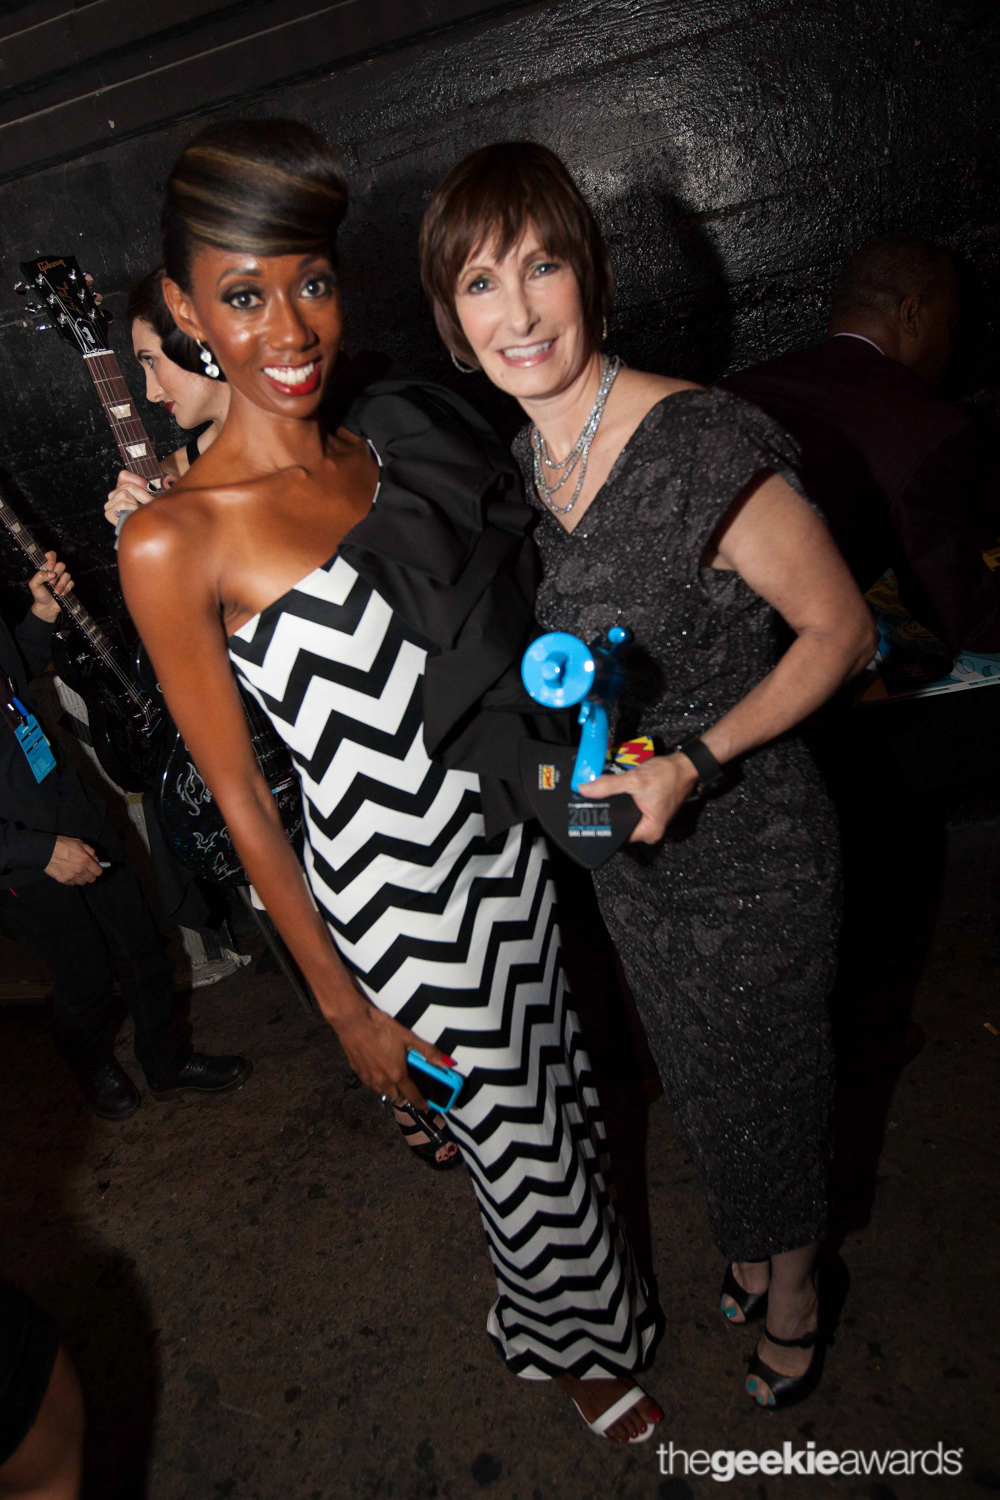 Joy Donnell and legendary producer Gale Ann Hurd at The Geekie Awards.